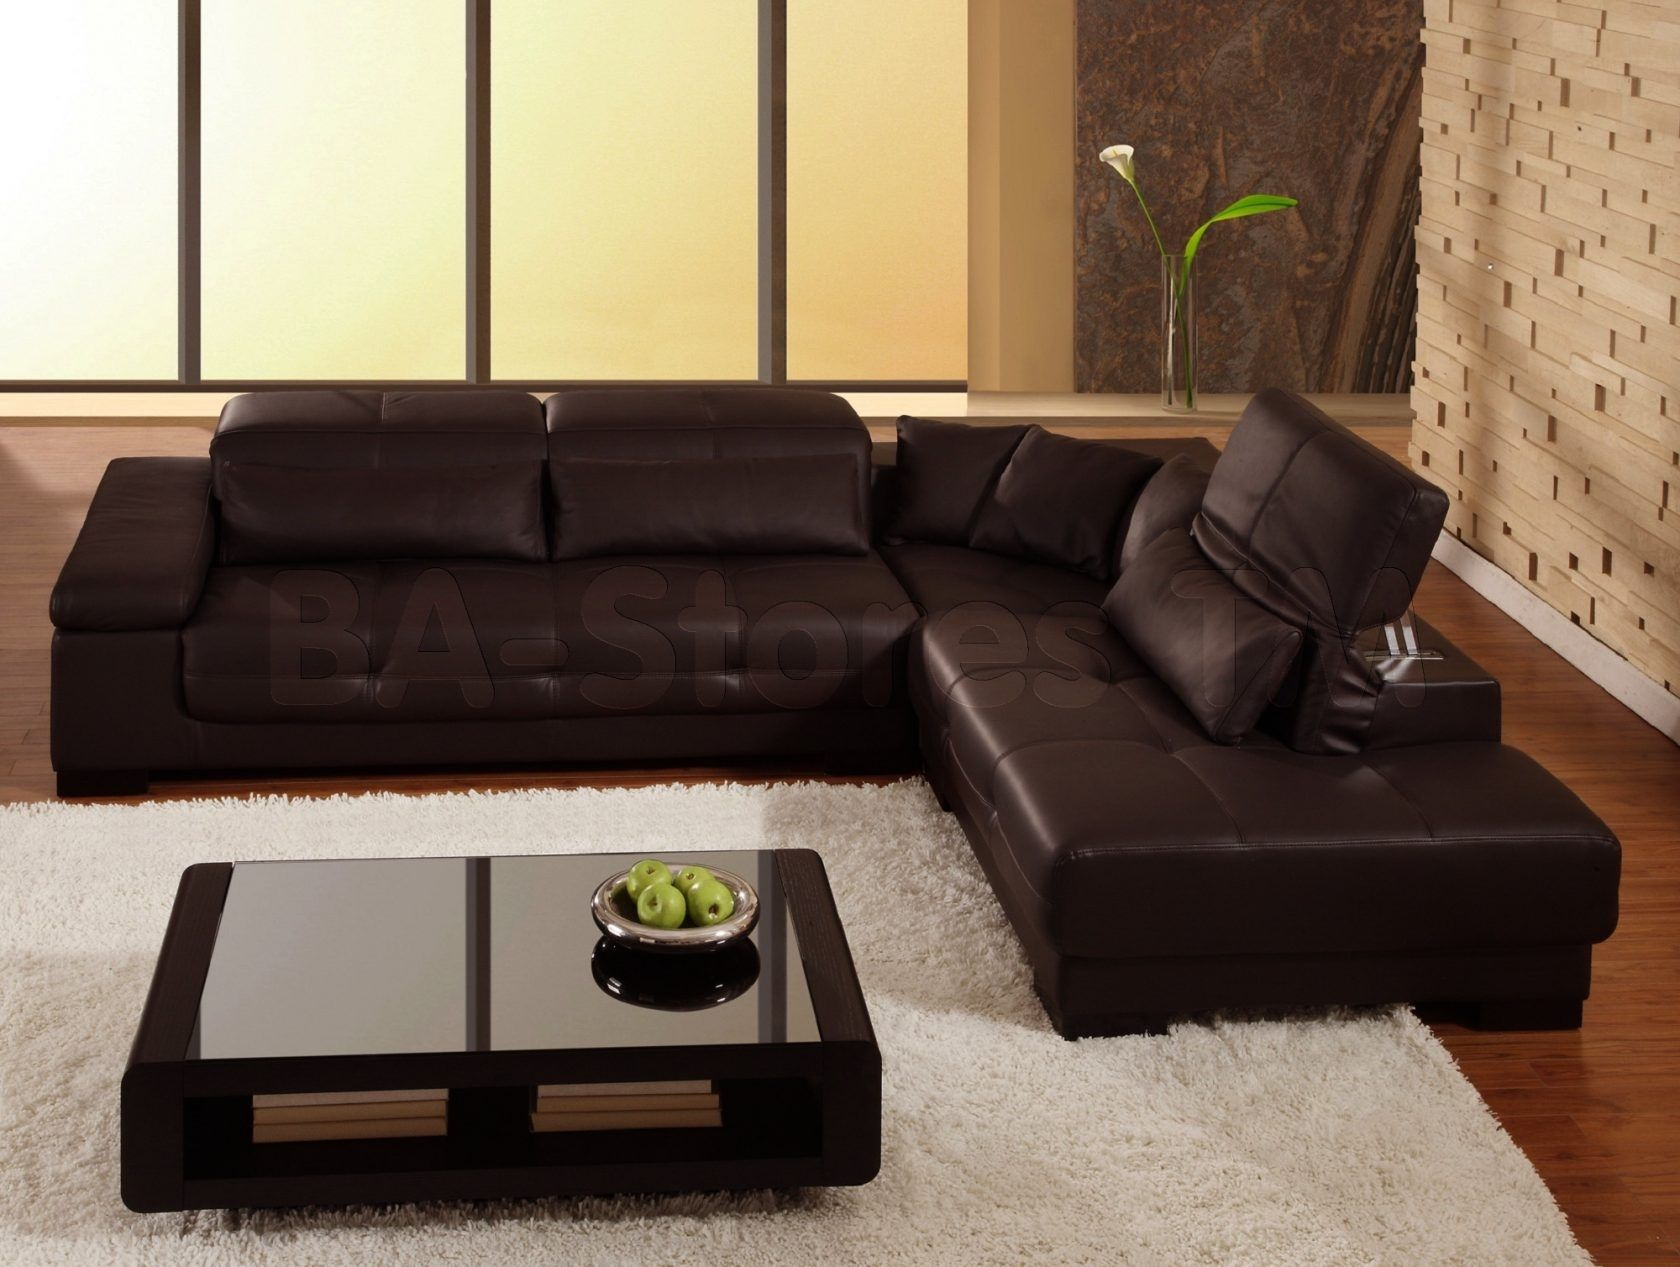 10 Collection Of Raleigh Nc Sectional Sofas Sofa Ideas Brown Sectional Sofa Dark Brown Couch Living Room Brown Living Room Decor